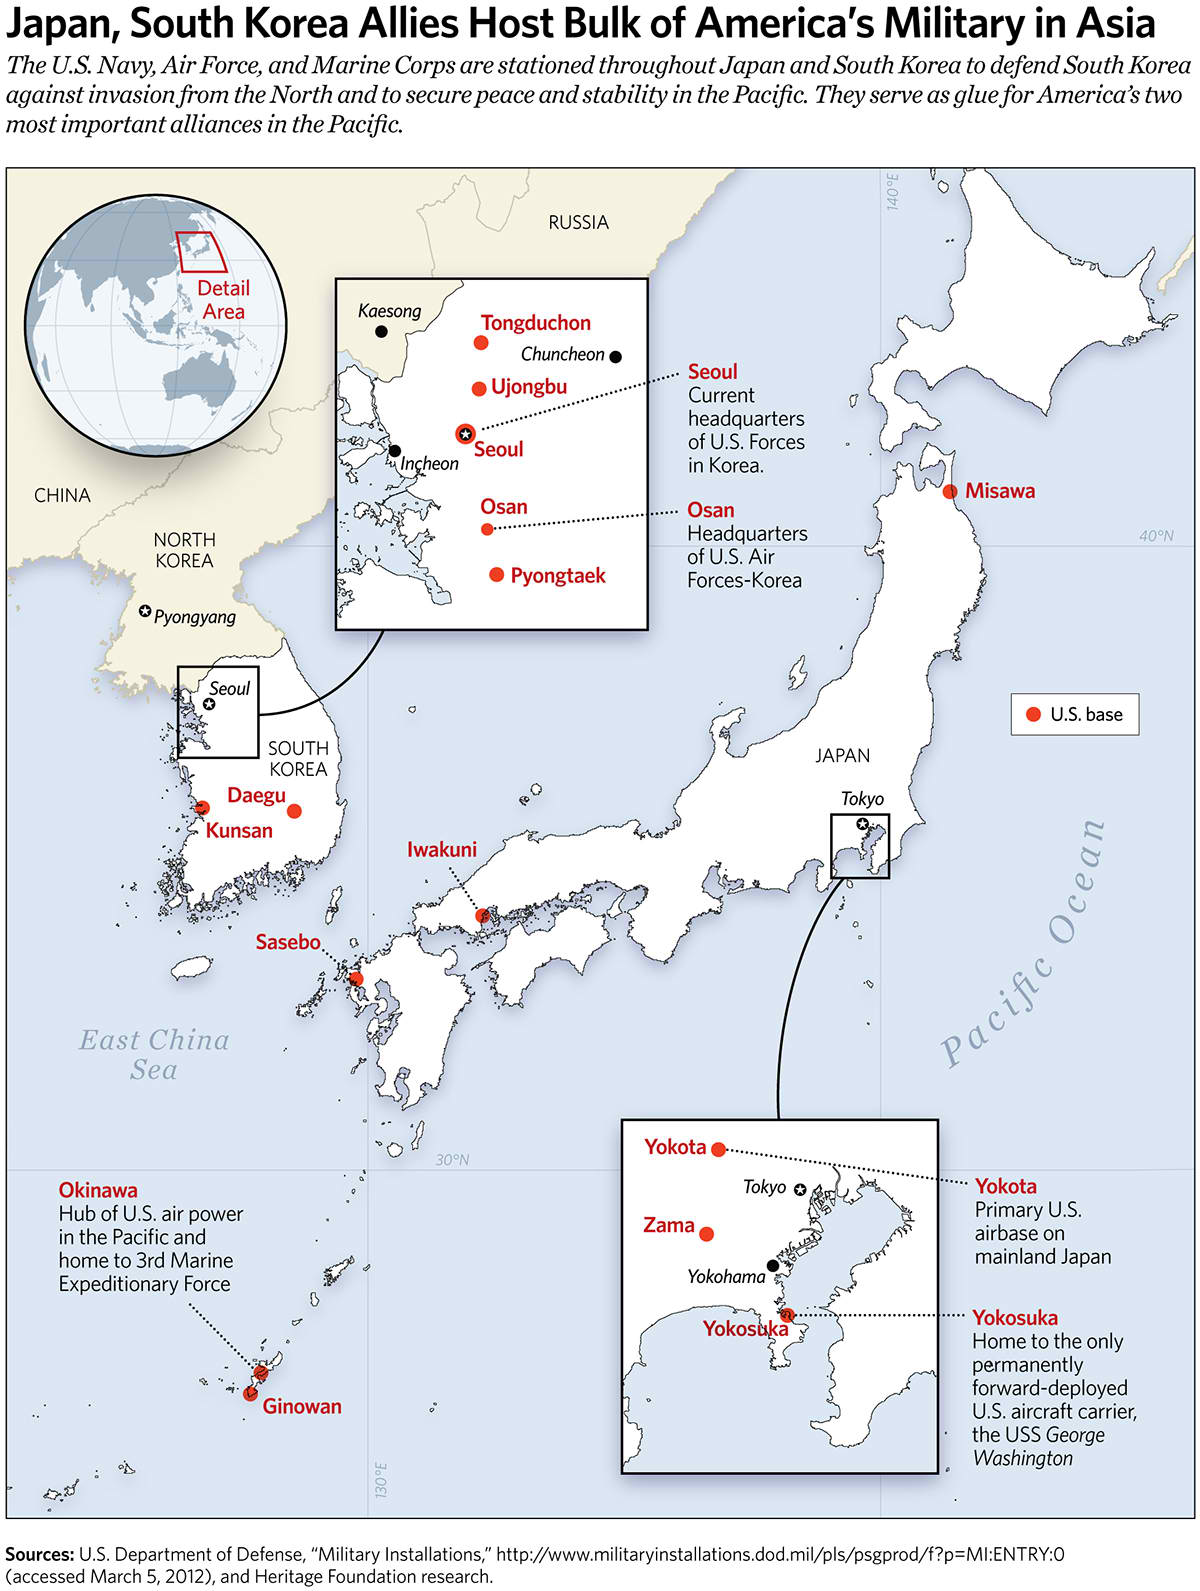 Japan, South Korea Allies Host Bulk of Americaâ's Military in Asia